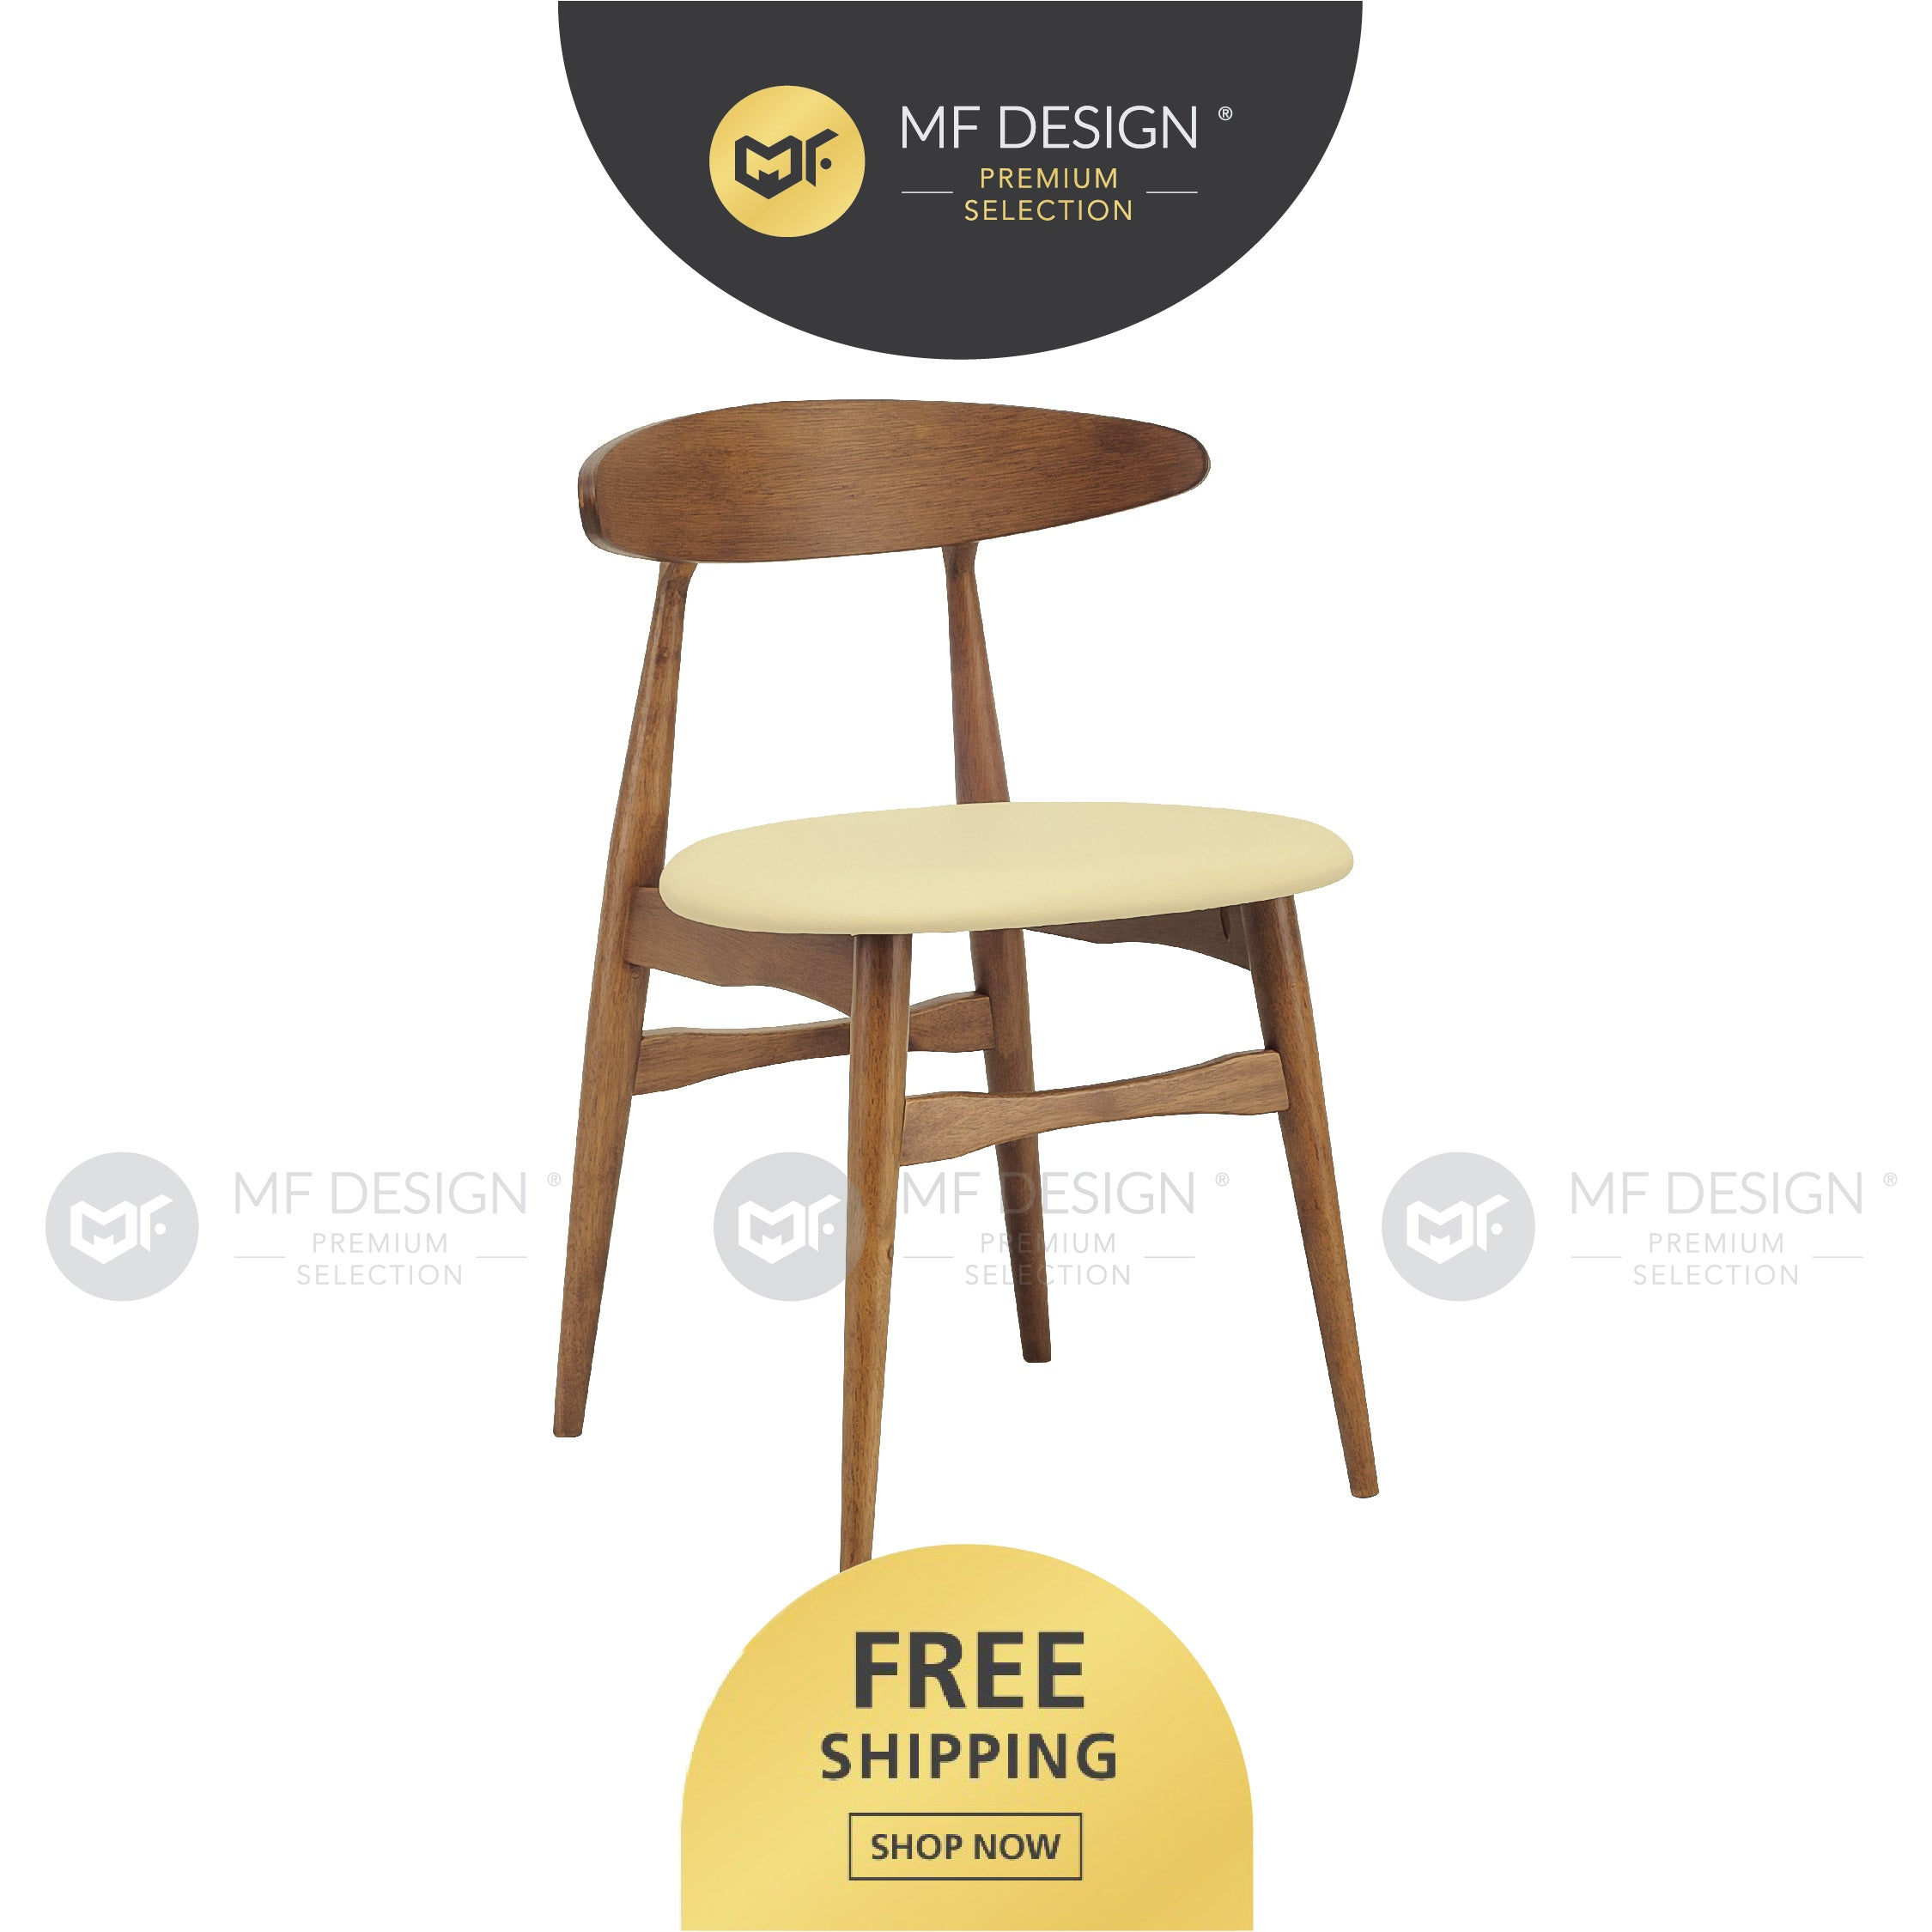 MFD Premium Tavis Dining Chair / Wooden Chair / Solid Rubber Wood / Kerusi Makan Kayu Getah / Living Room / Scandinavian